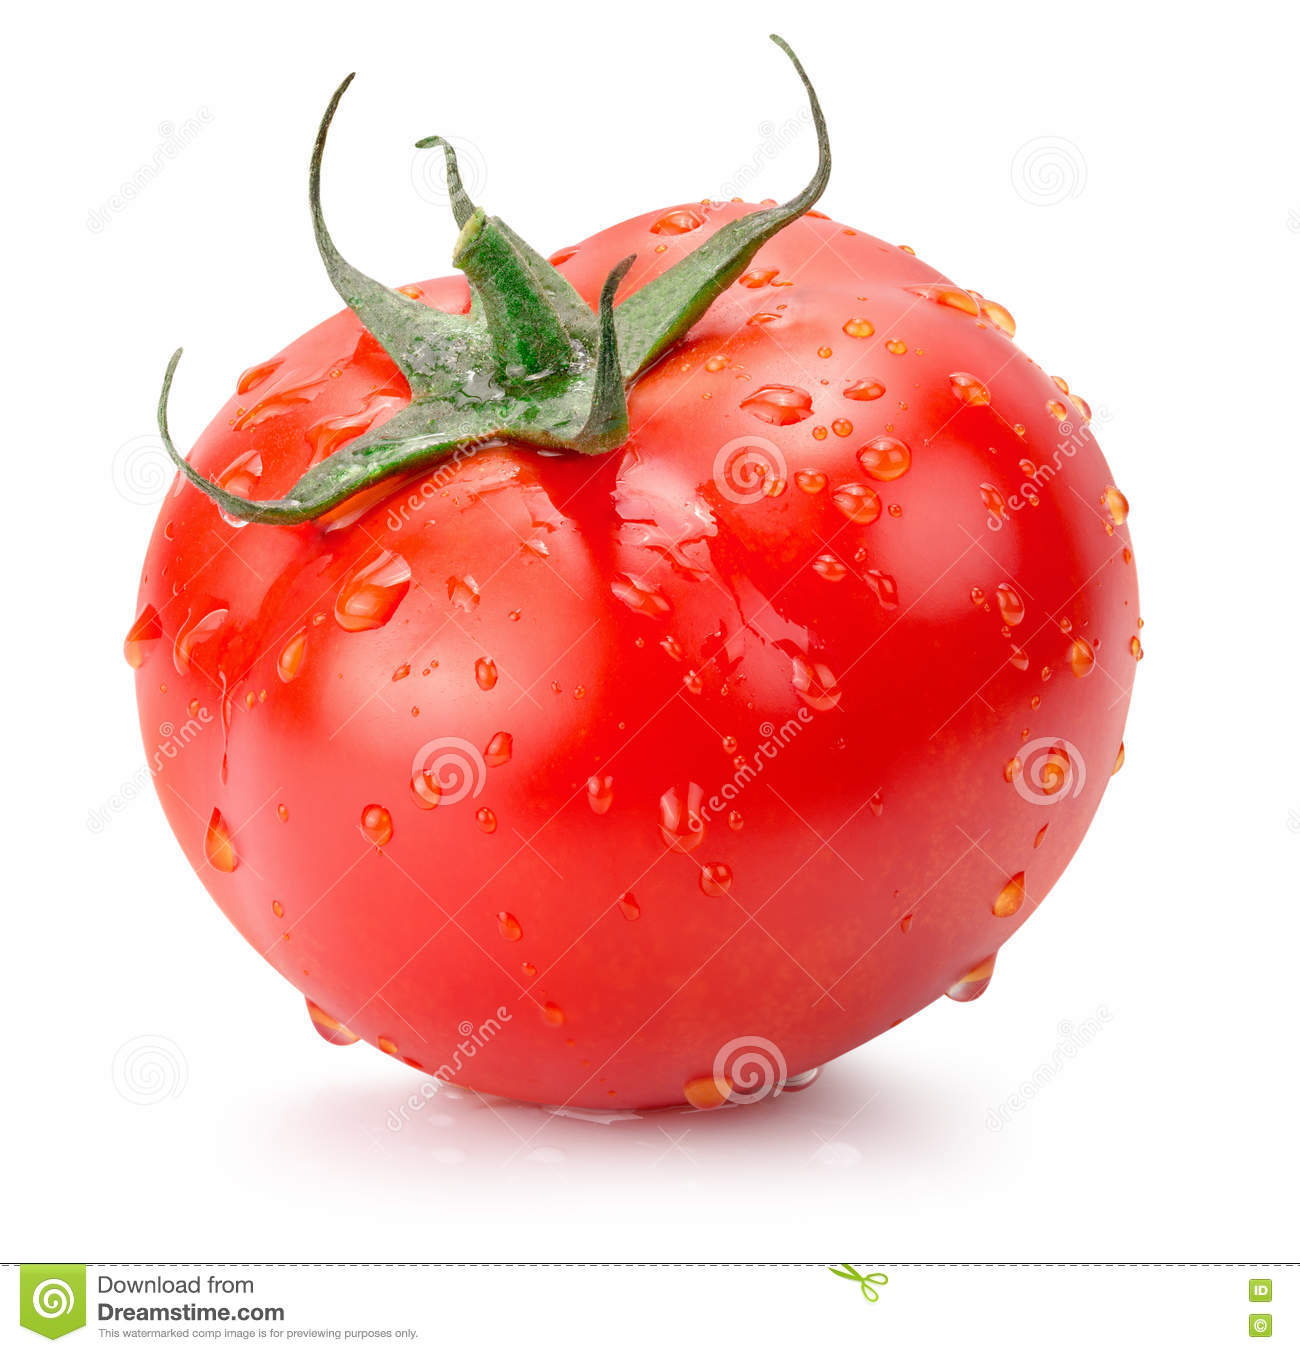 Download Tomato With Water Drops Isolated On The White Background Stock Image - Image of organic, tomato: 70407585